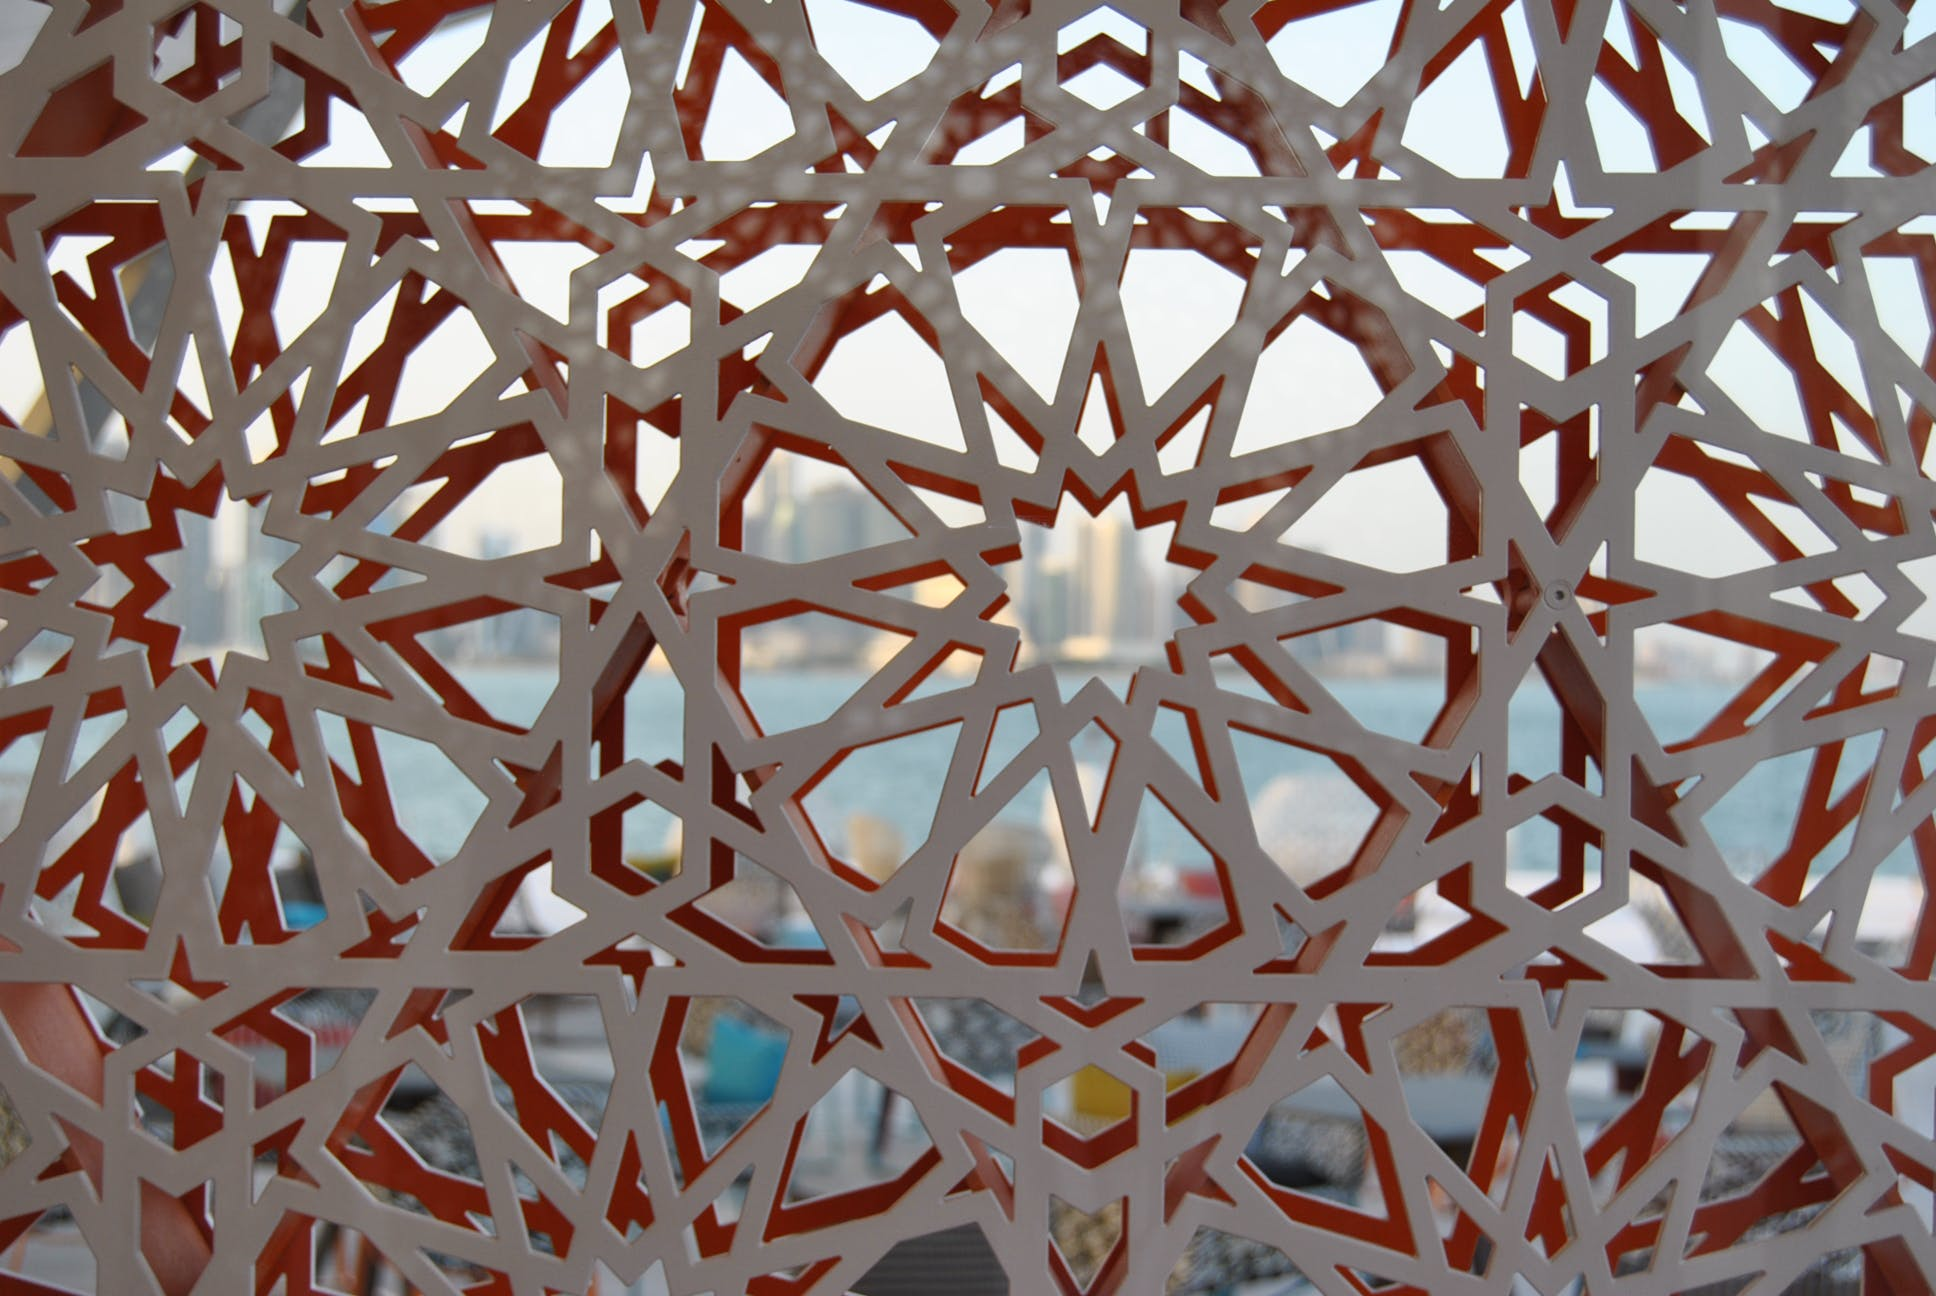 Museum of Islamic Art Park   Design and build   Kiosks and